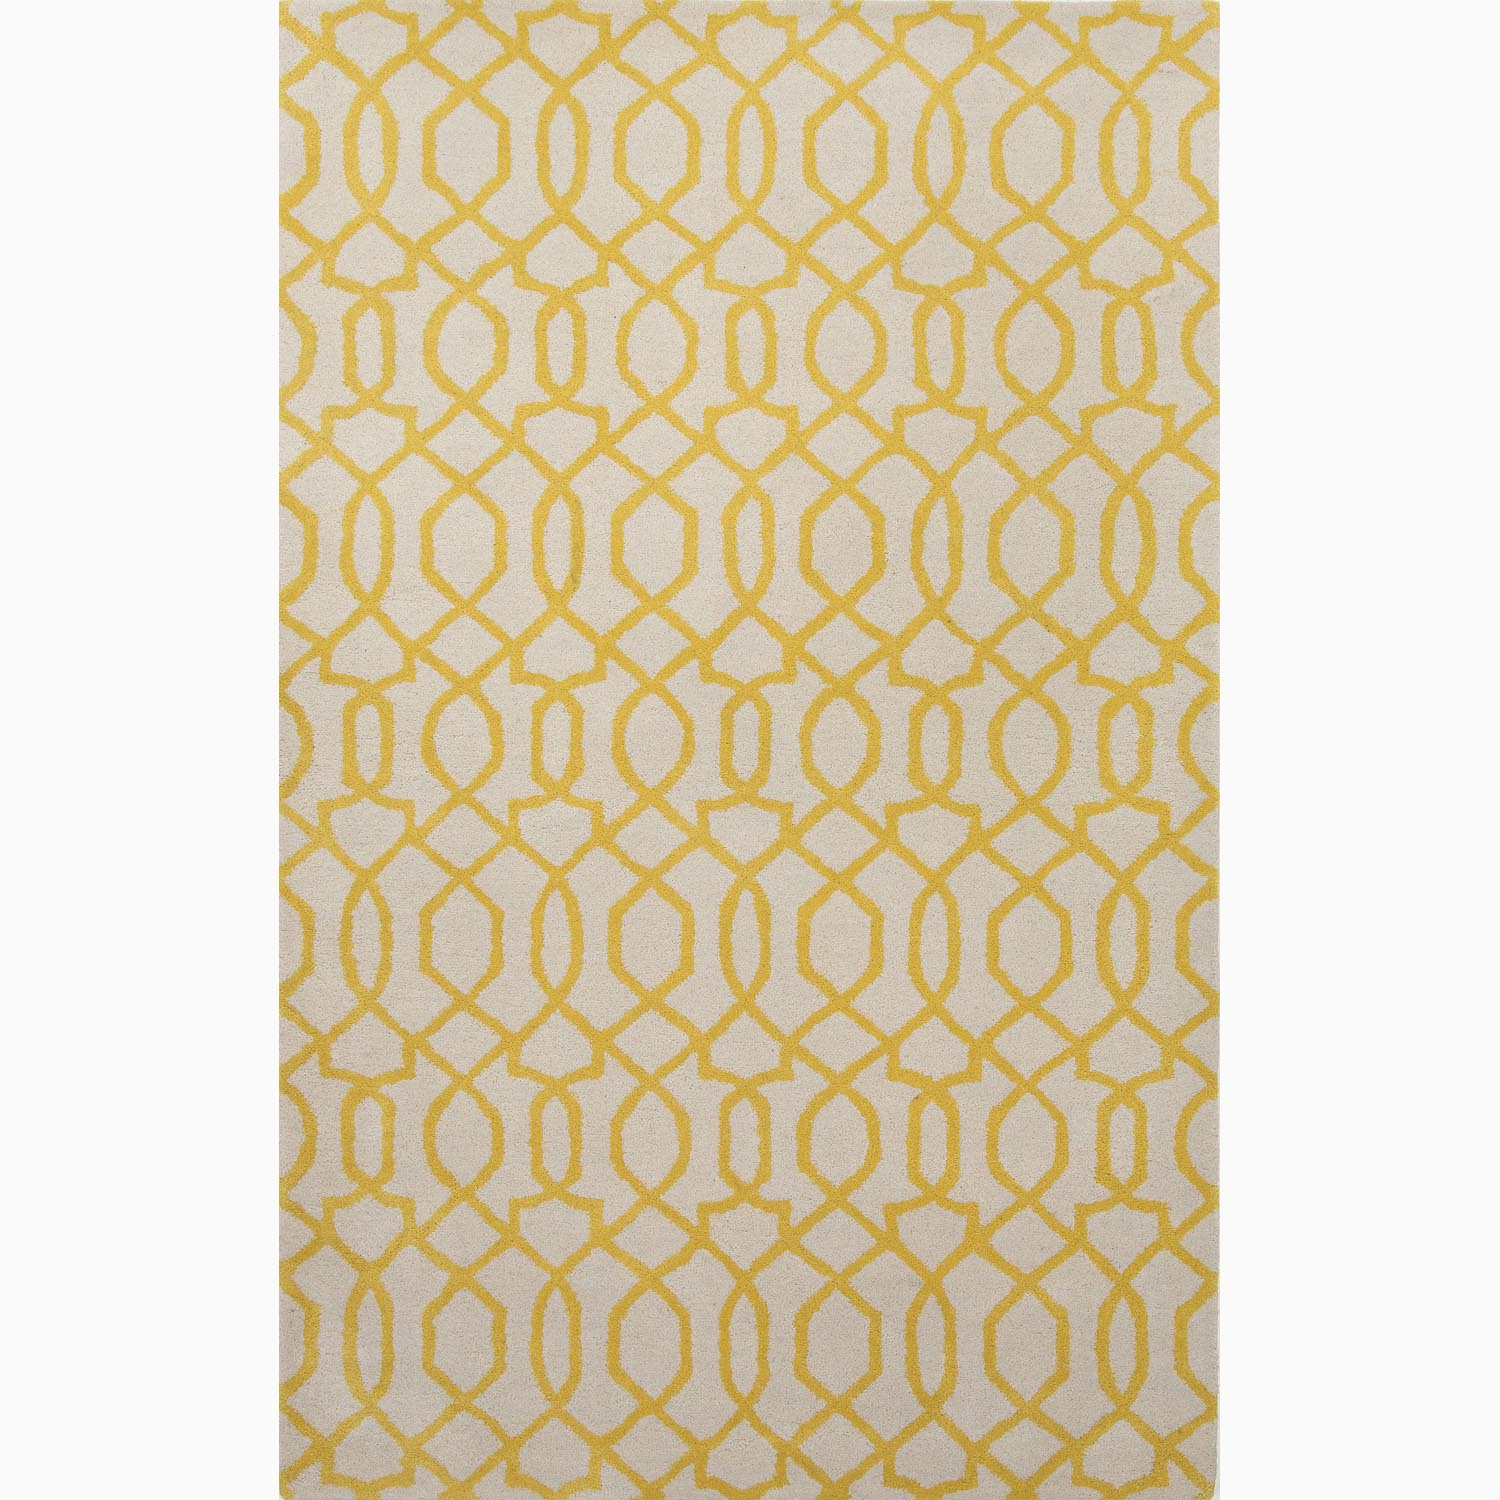 Handmade Ivory/ Yellow Wool Te x tured Rug (9'6 x 13'6)